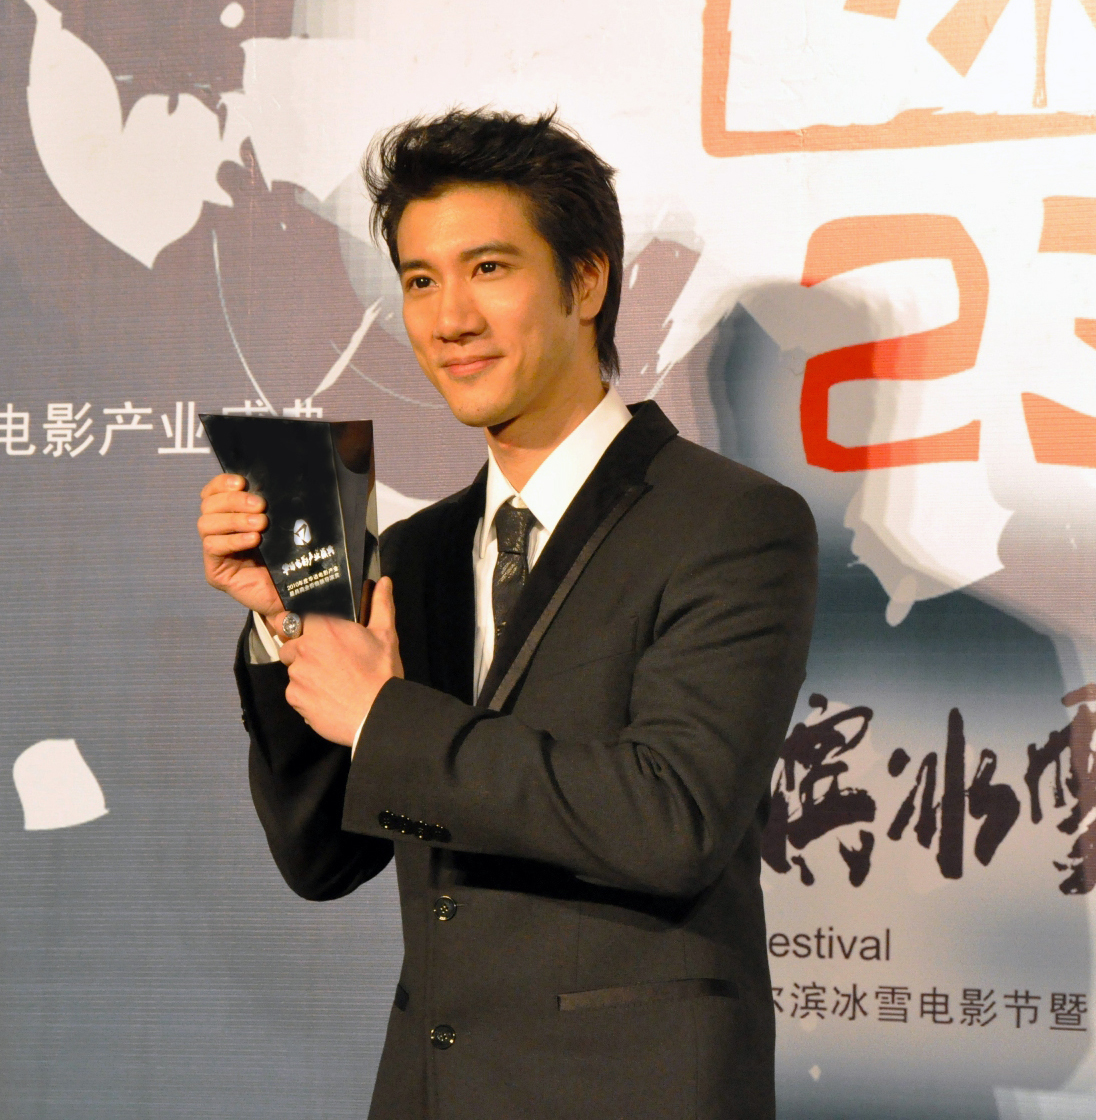 leehom wang Xu jan 27 2012 8:39 am ohh my idol is so good in this movie i love lee-hom wang act's as a general and in the end he sang the song ~_.